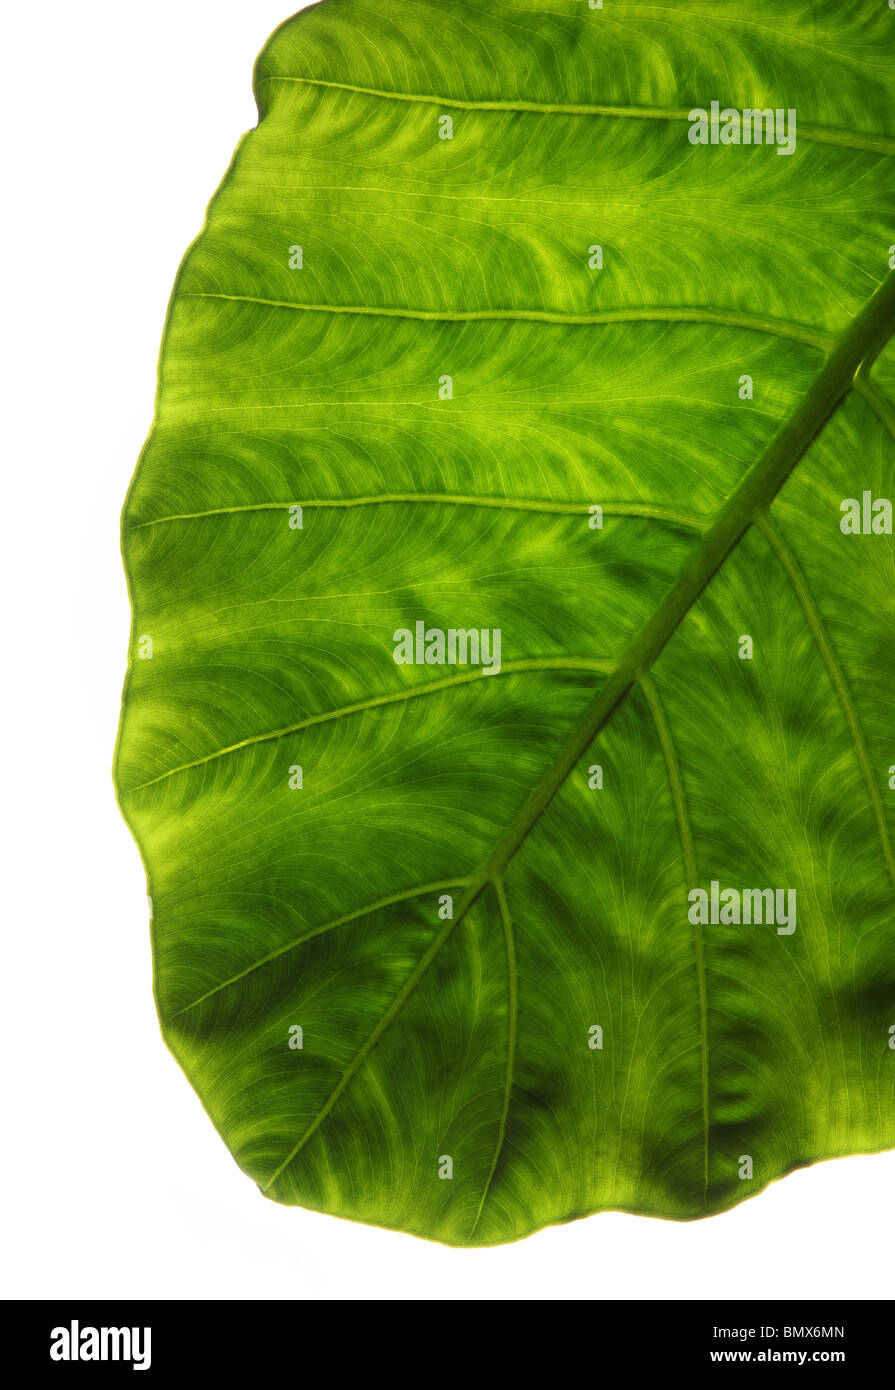 La fin d'une plante verte feuille, fond blanc Photo Stock